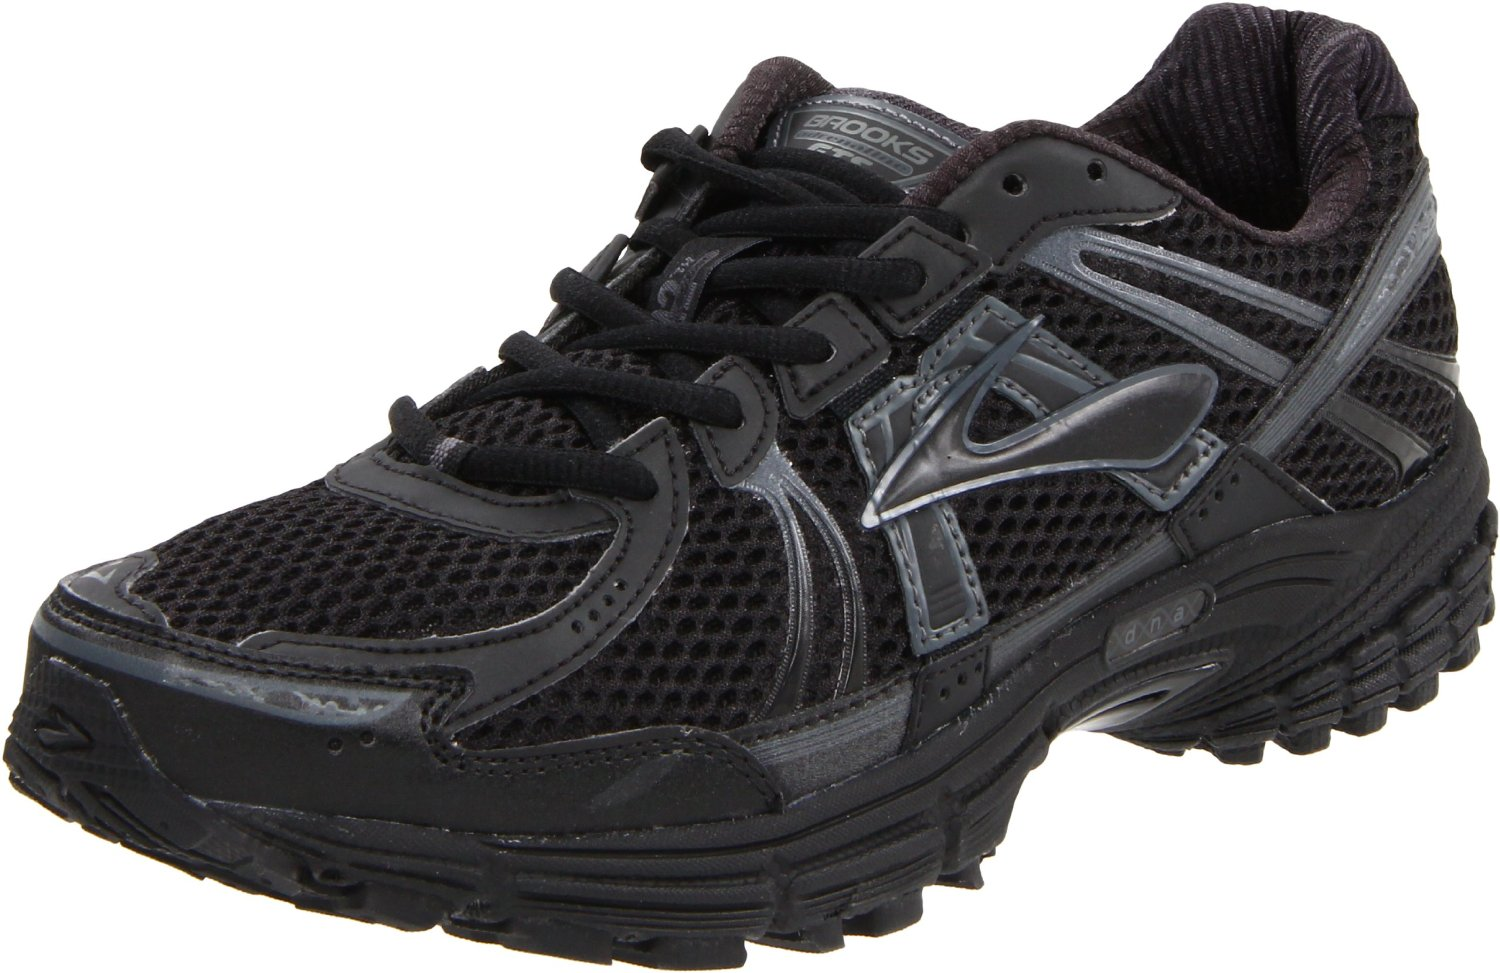 Top Of The Line Brooks Running Shoes